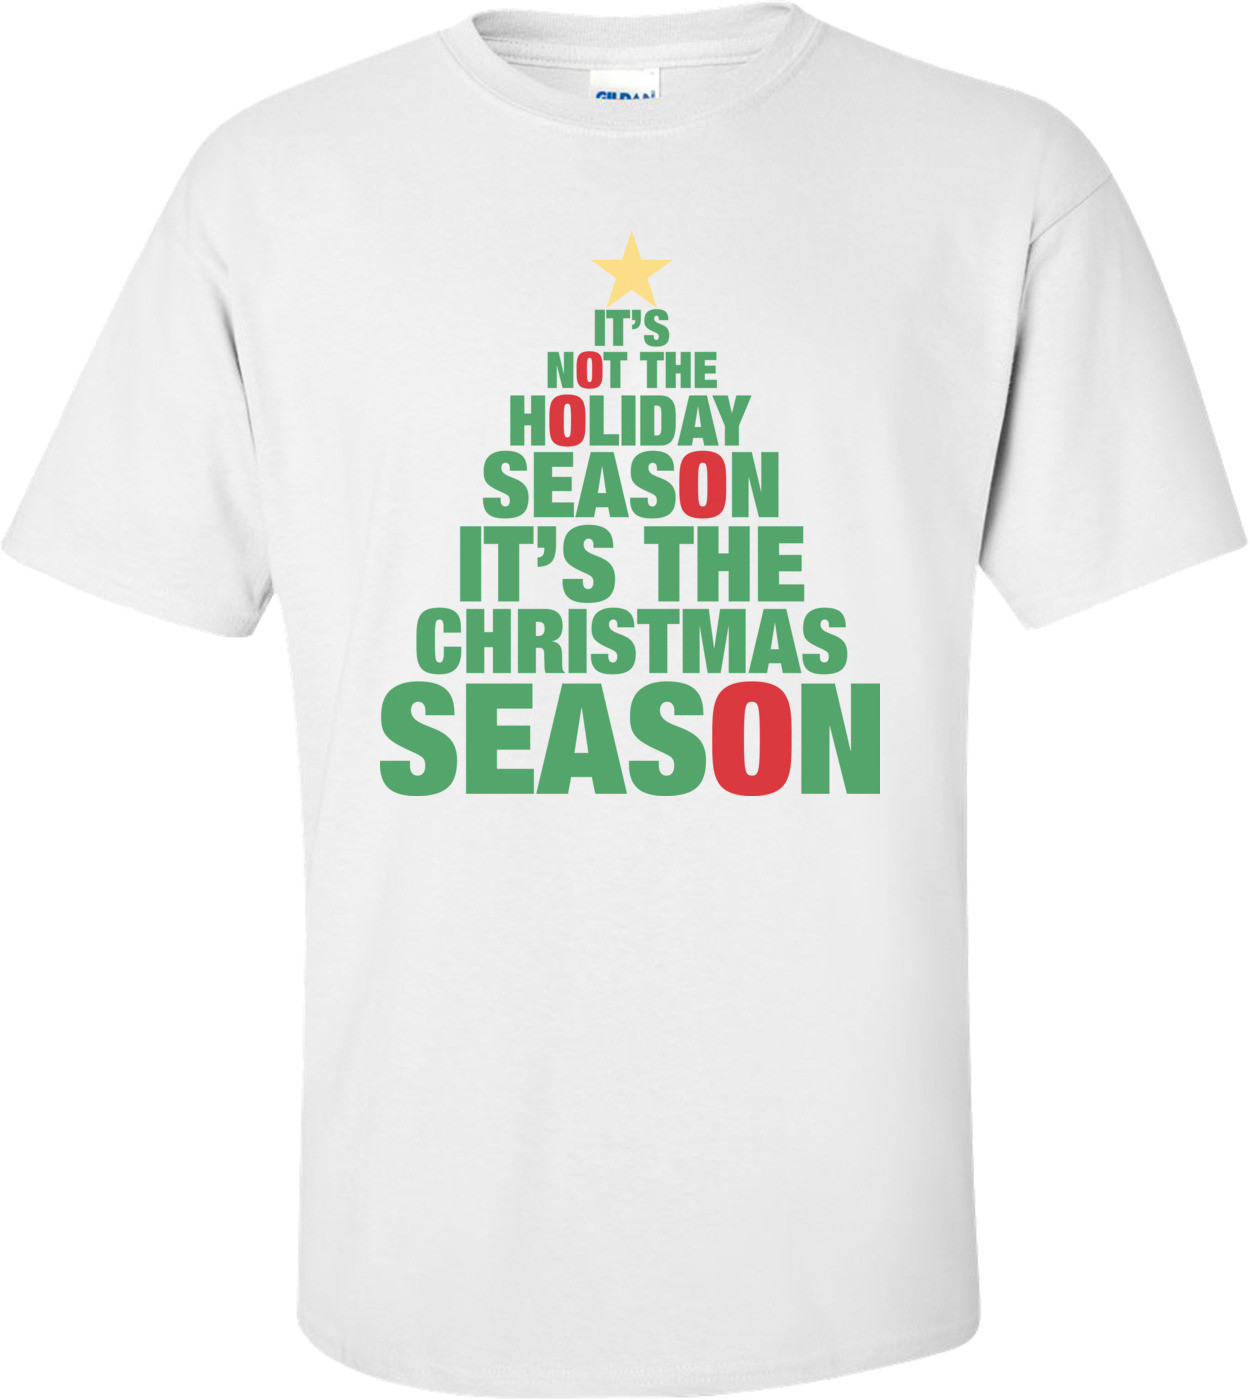 It's Not The Holiday Season It's The Christmas Season T-shirt